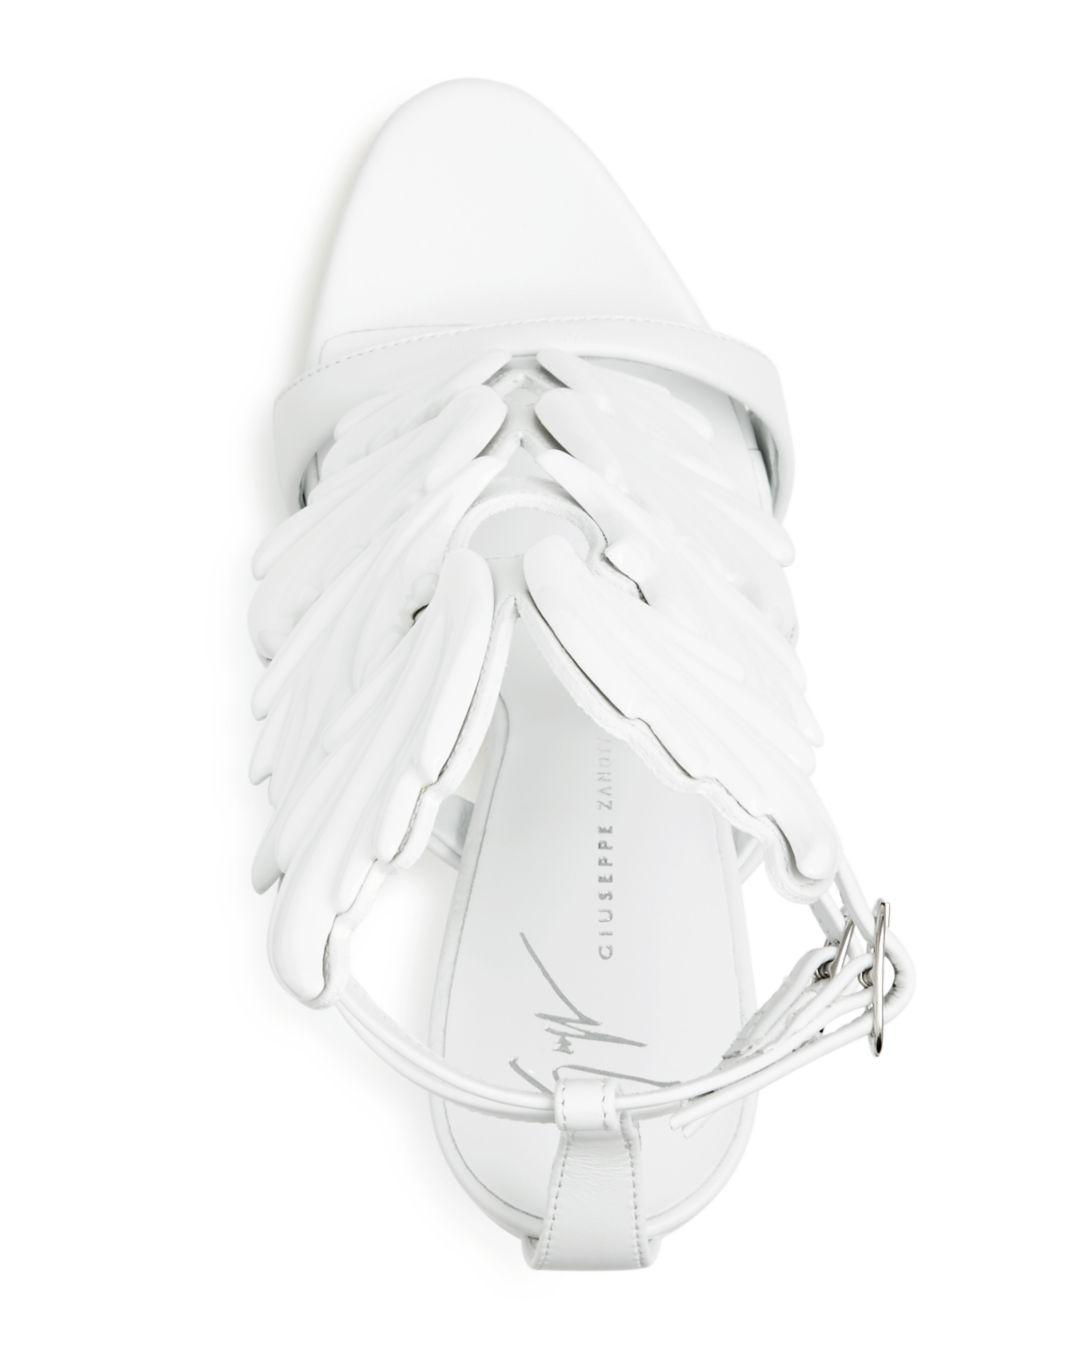 095691a314af1 Giuseppe Zanotti Women's Cruel Coline Leather Wing Embellished High ...